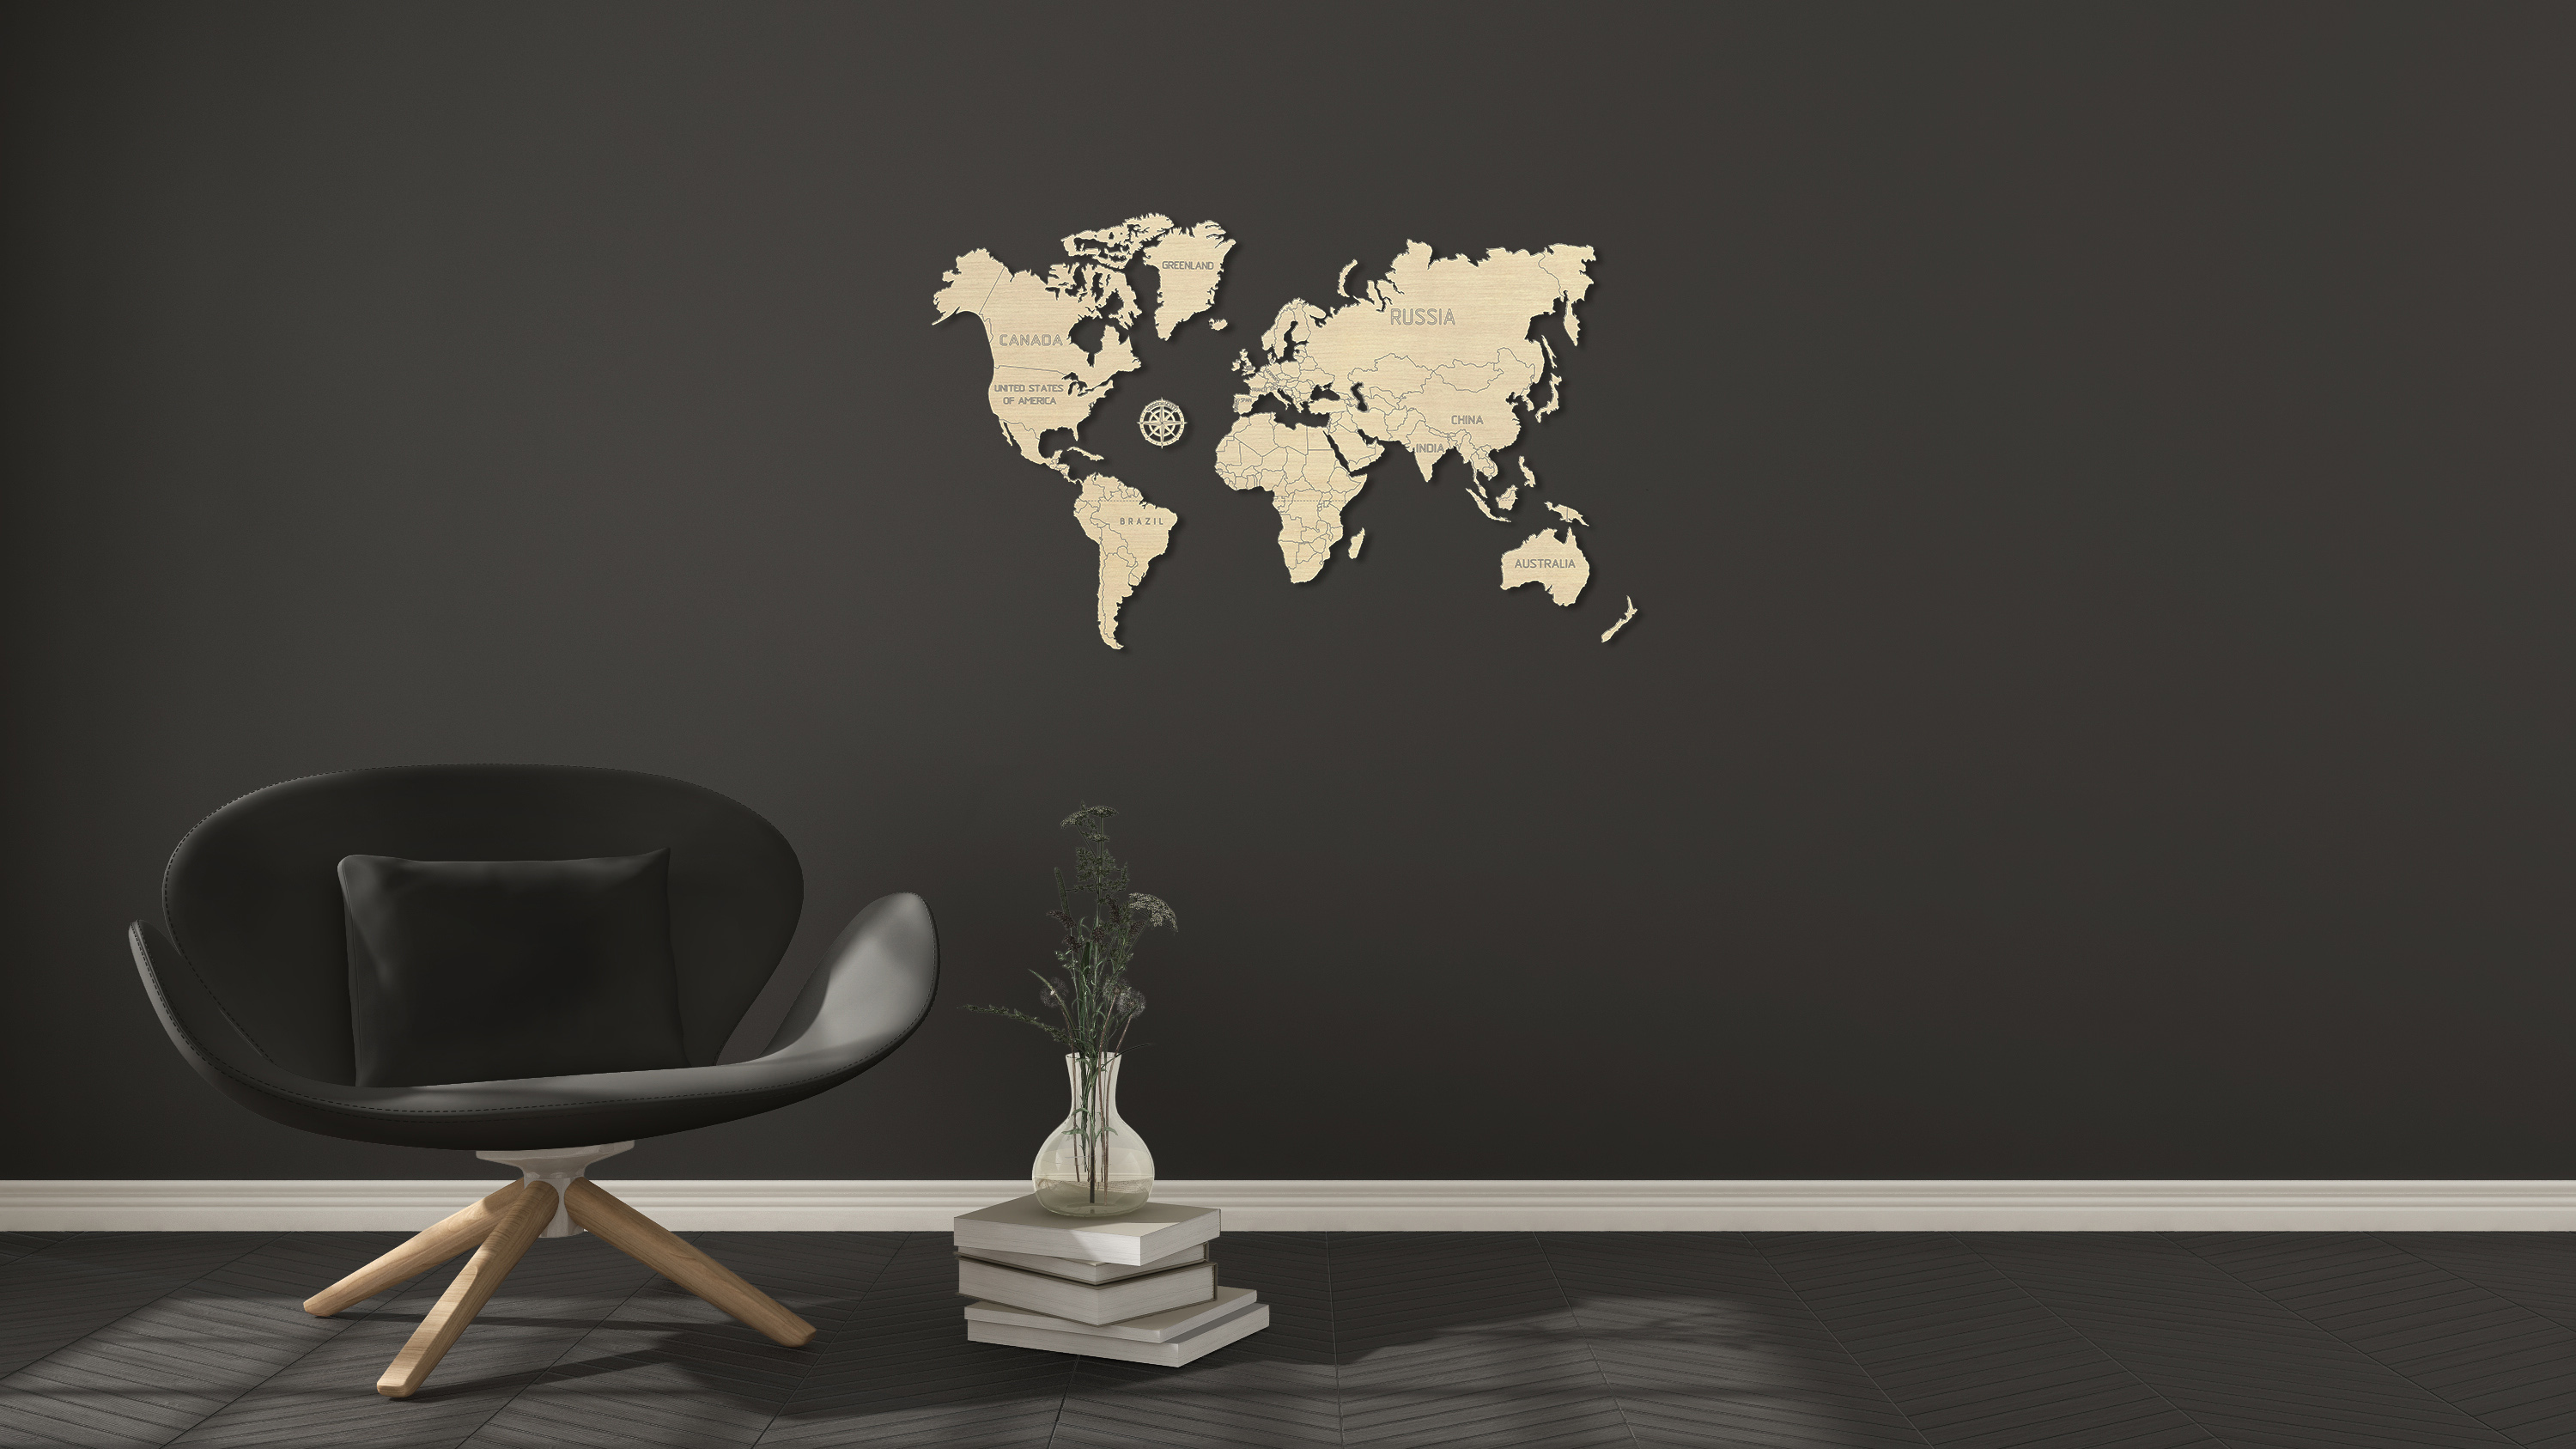 M World map 3D puzzles Grey background